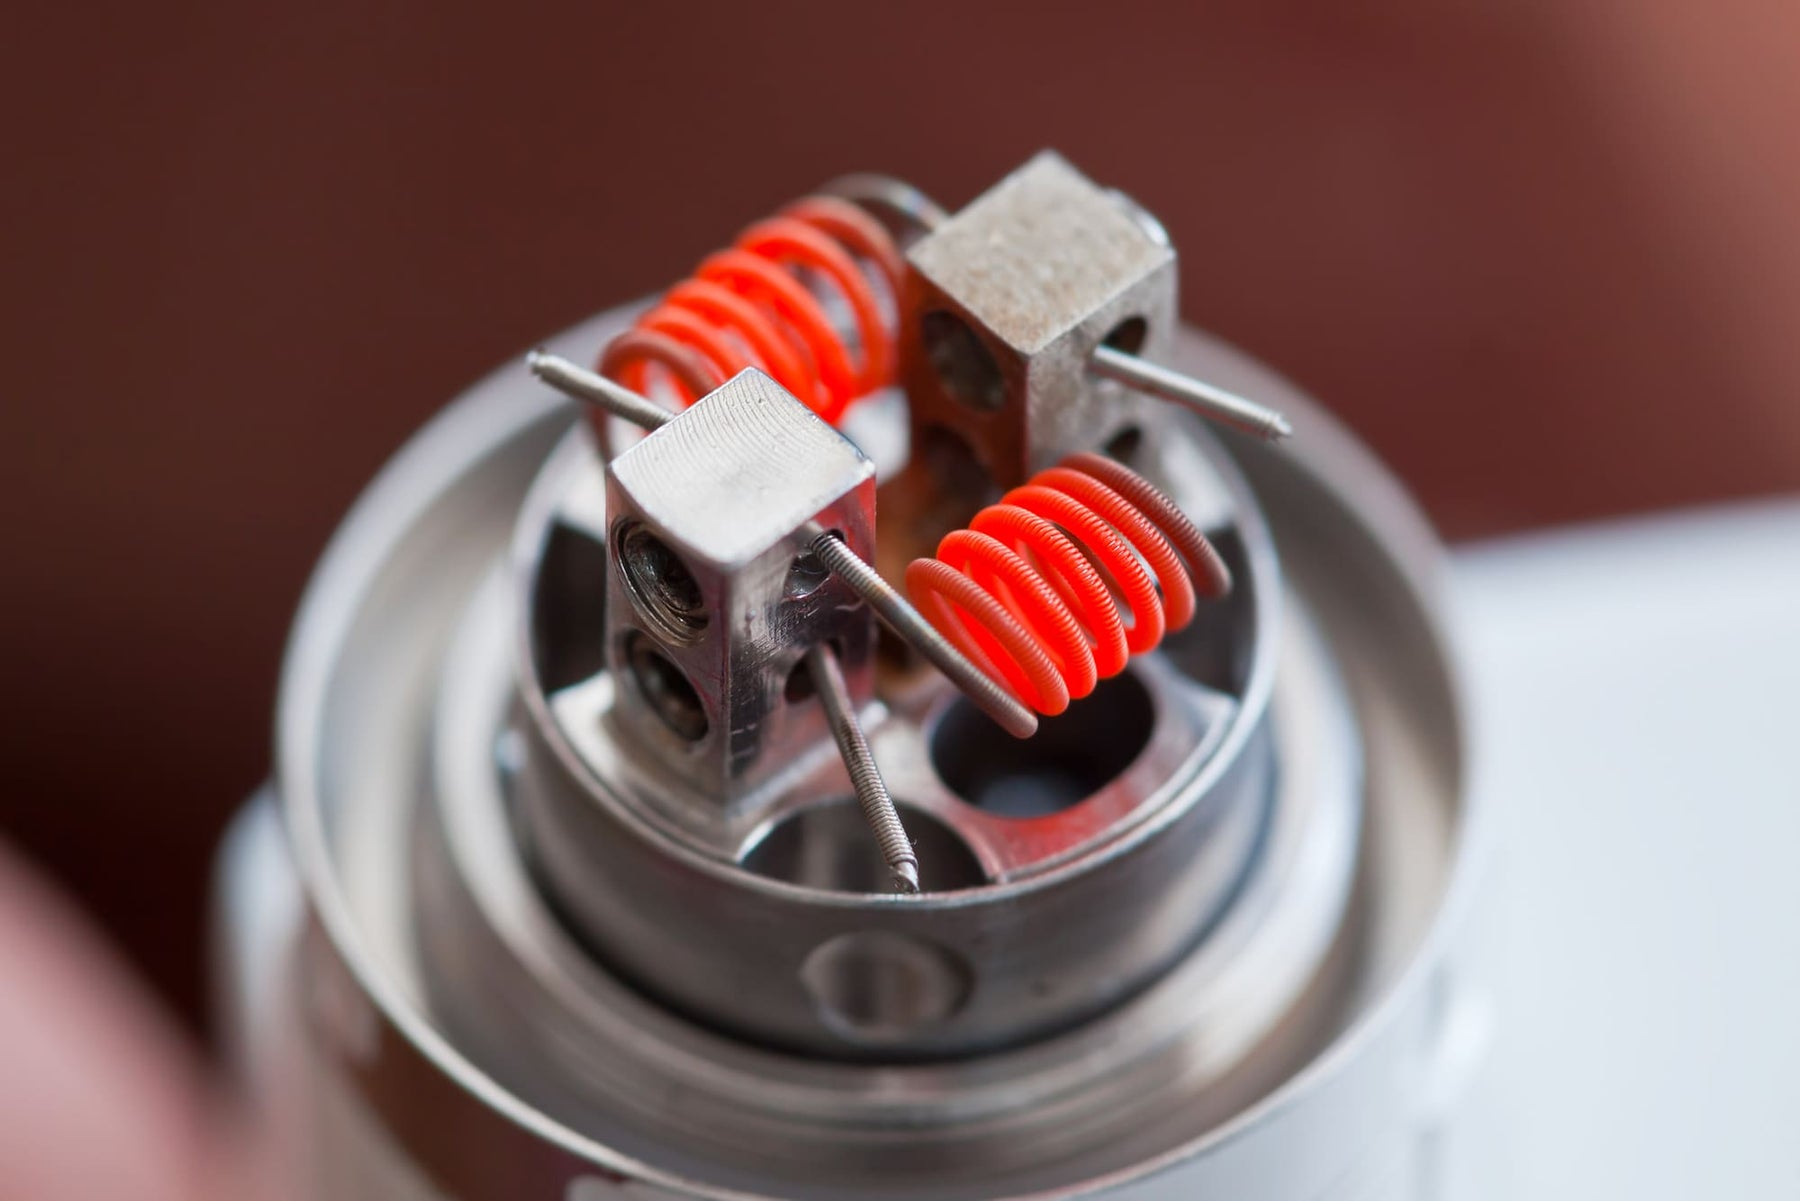 6 Easy Ways To Stop Your Coil From Burning